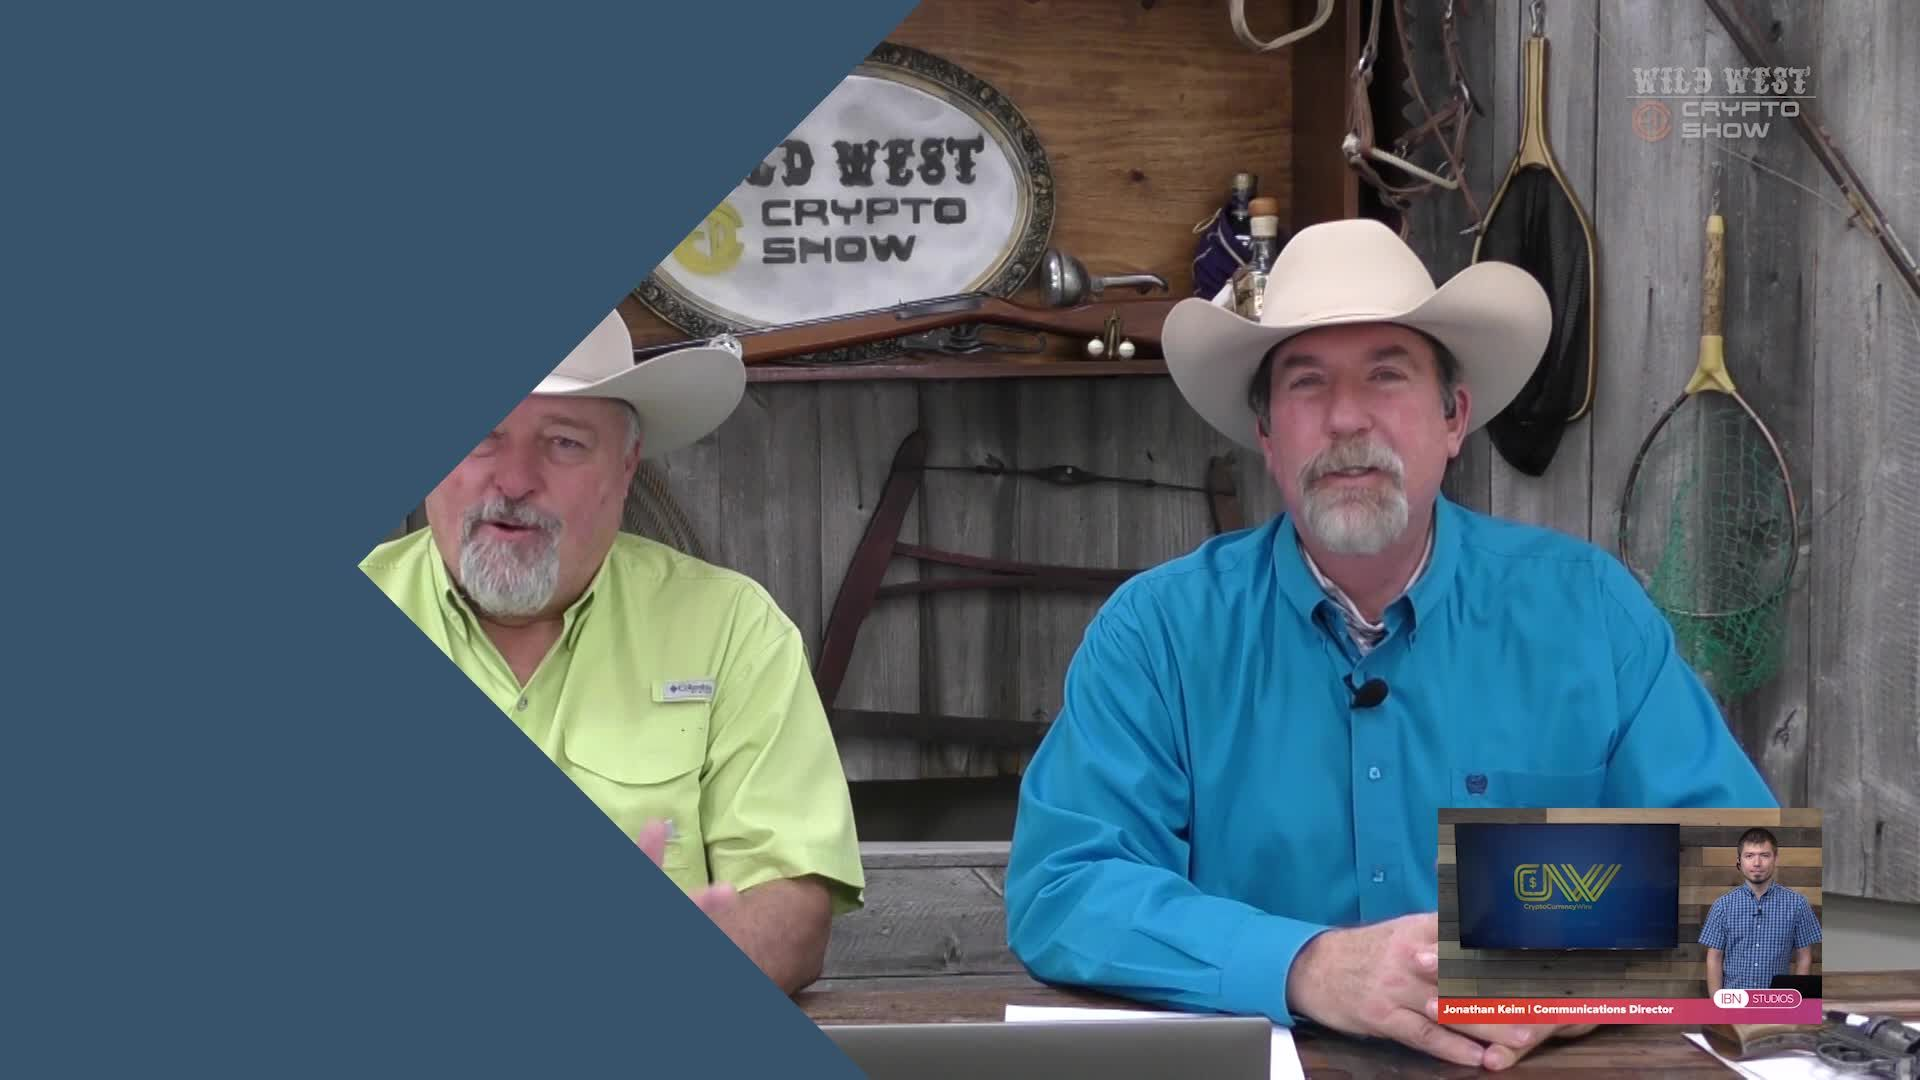 CryptoCurrencyWire Videos-The Wild West Crypto Show The Wild West Crypto Show Show on Paying Taxes in Crypto| CryptoCurrencyWire on The Wild West Crypto Show | Episode 125